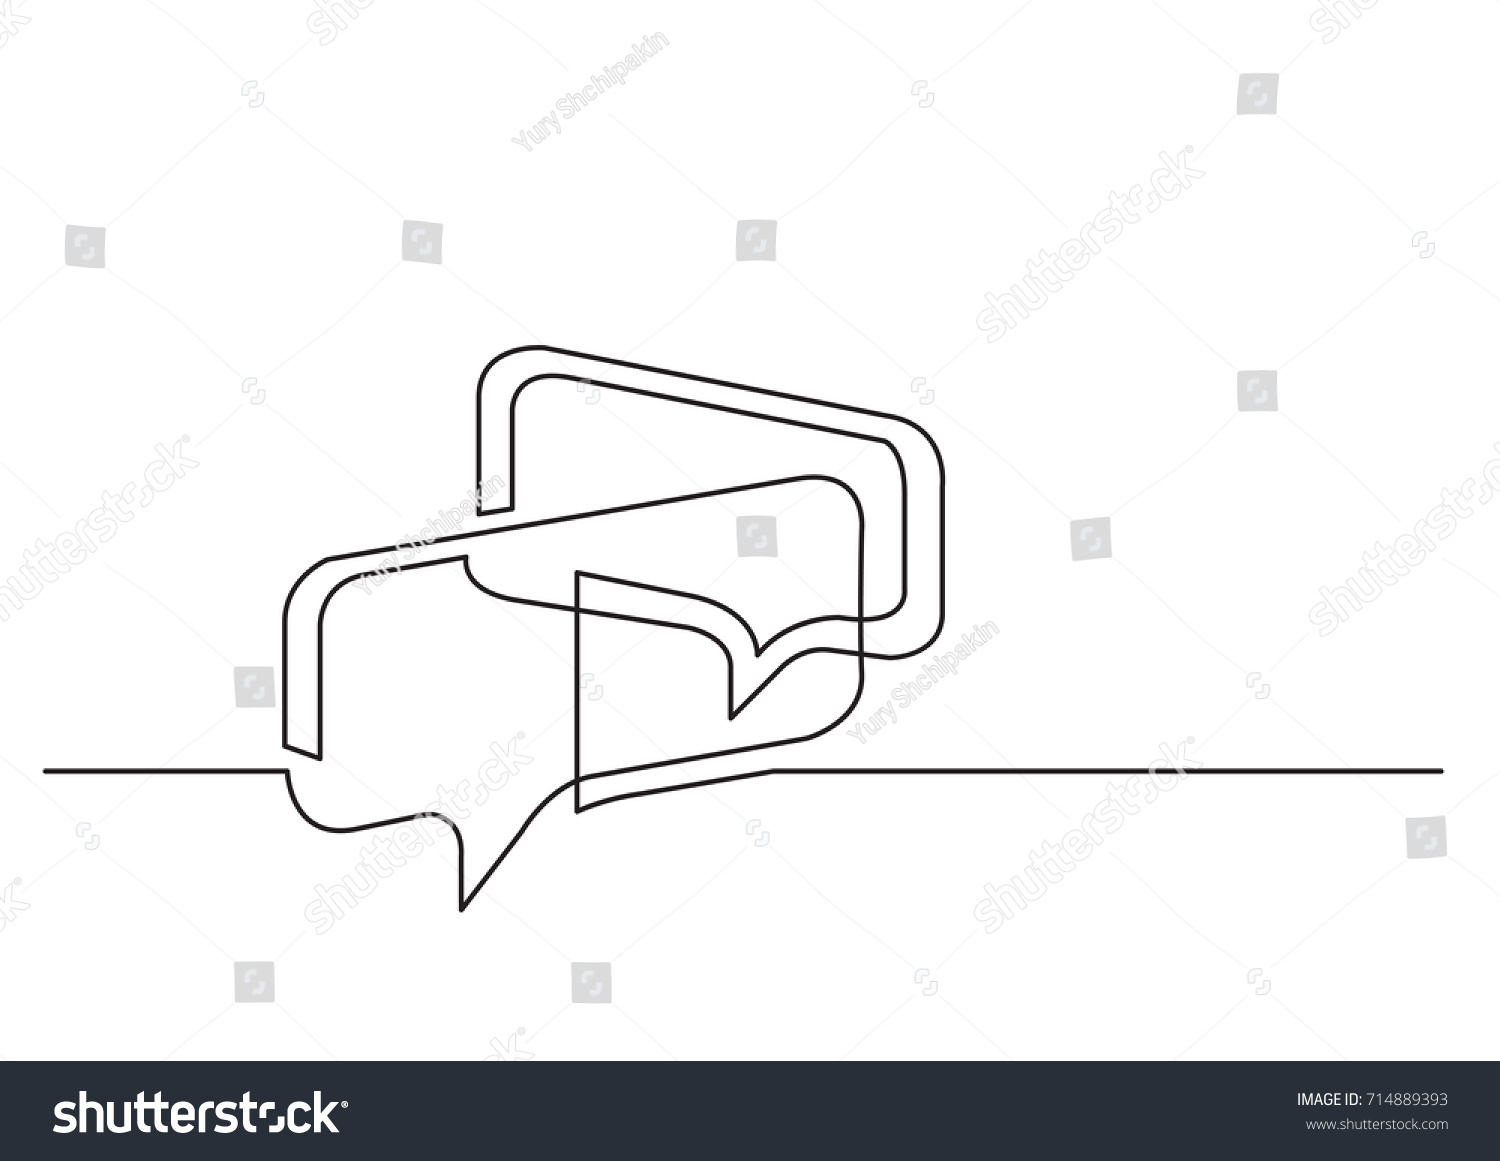 Single Line Text Art : One line drawing isolated vector object stock hd royalty